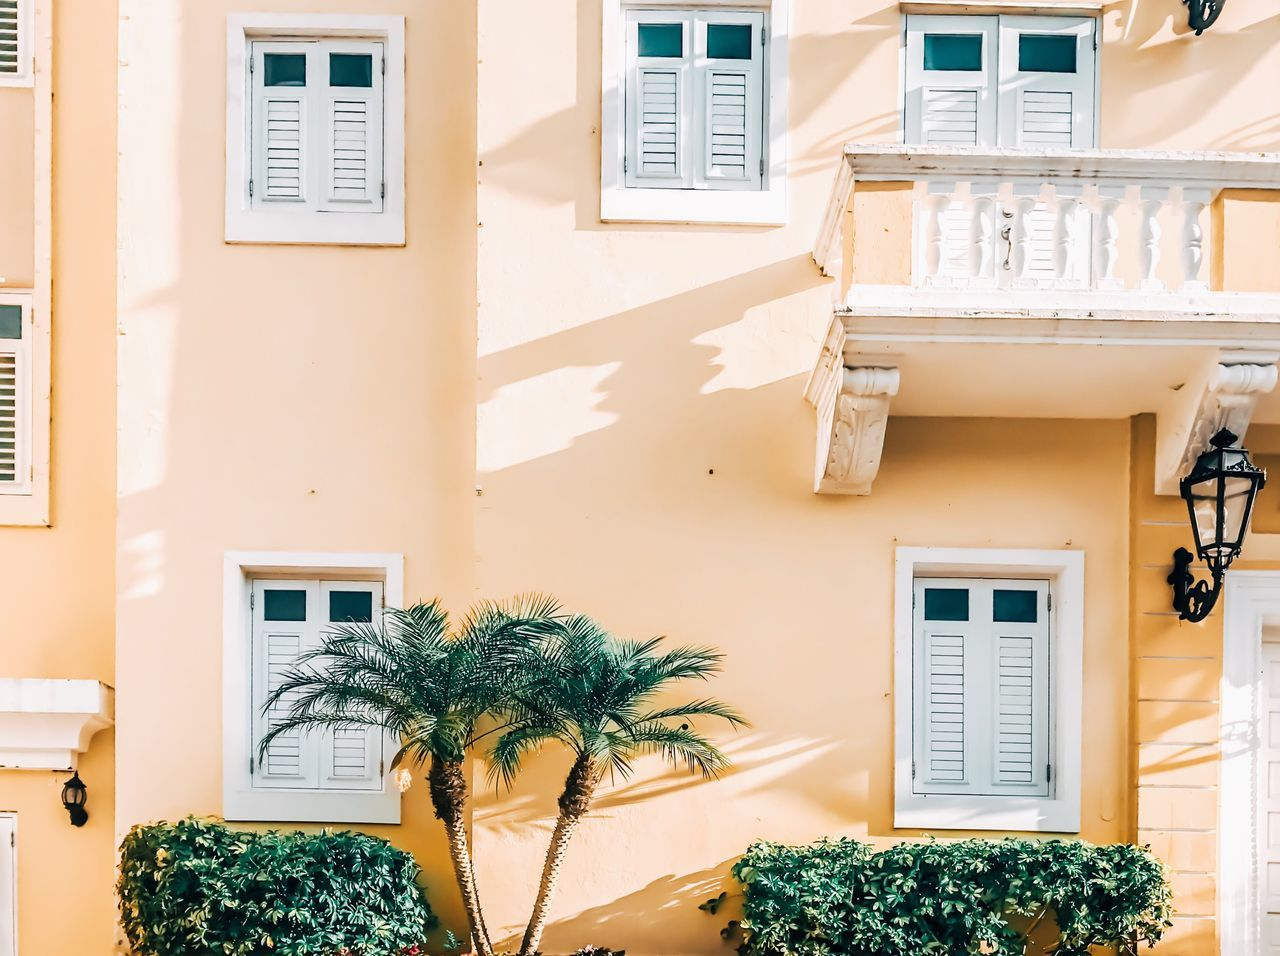 Architecture Building Exterior Window Built Structure House Residential Building Potted Plant Day Growth Outdoors Sunlight No People Tree Window Box